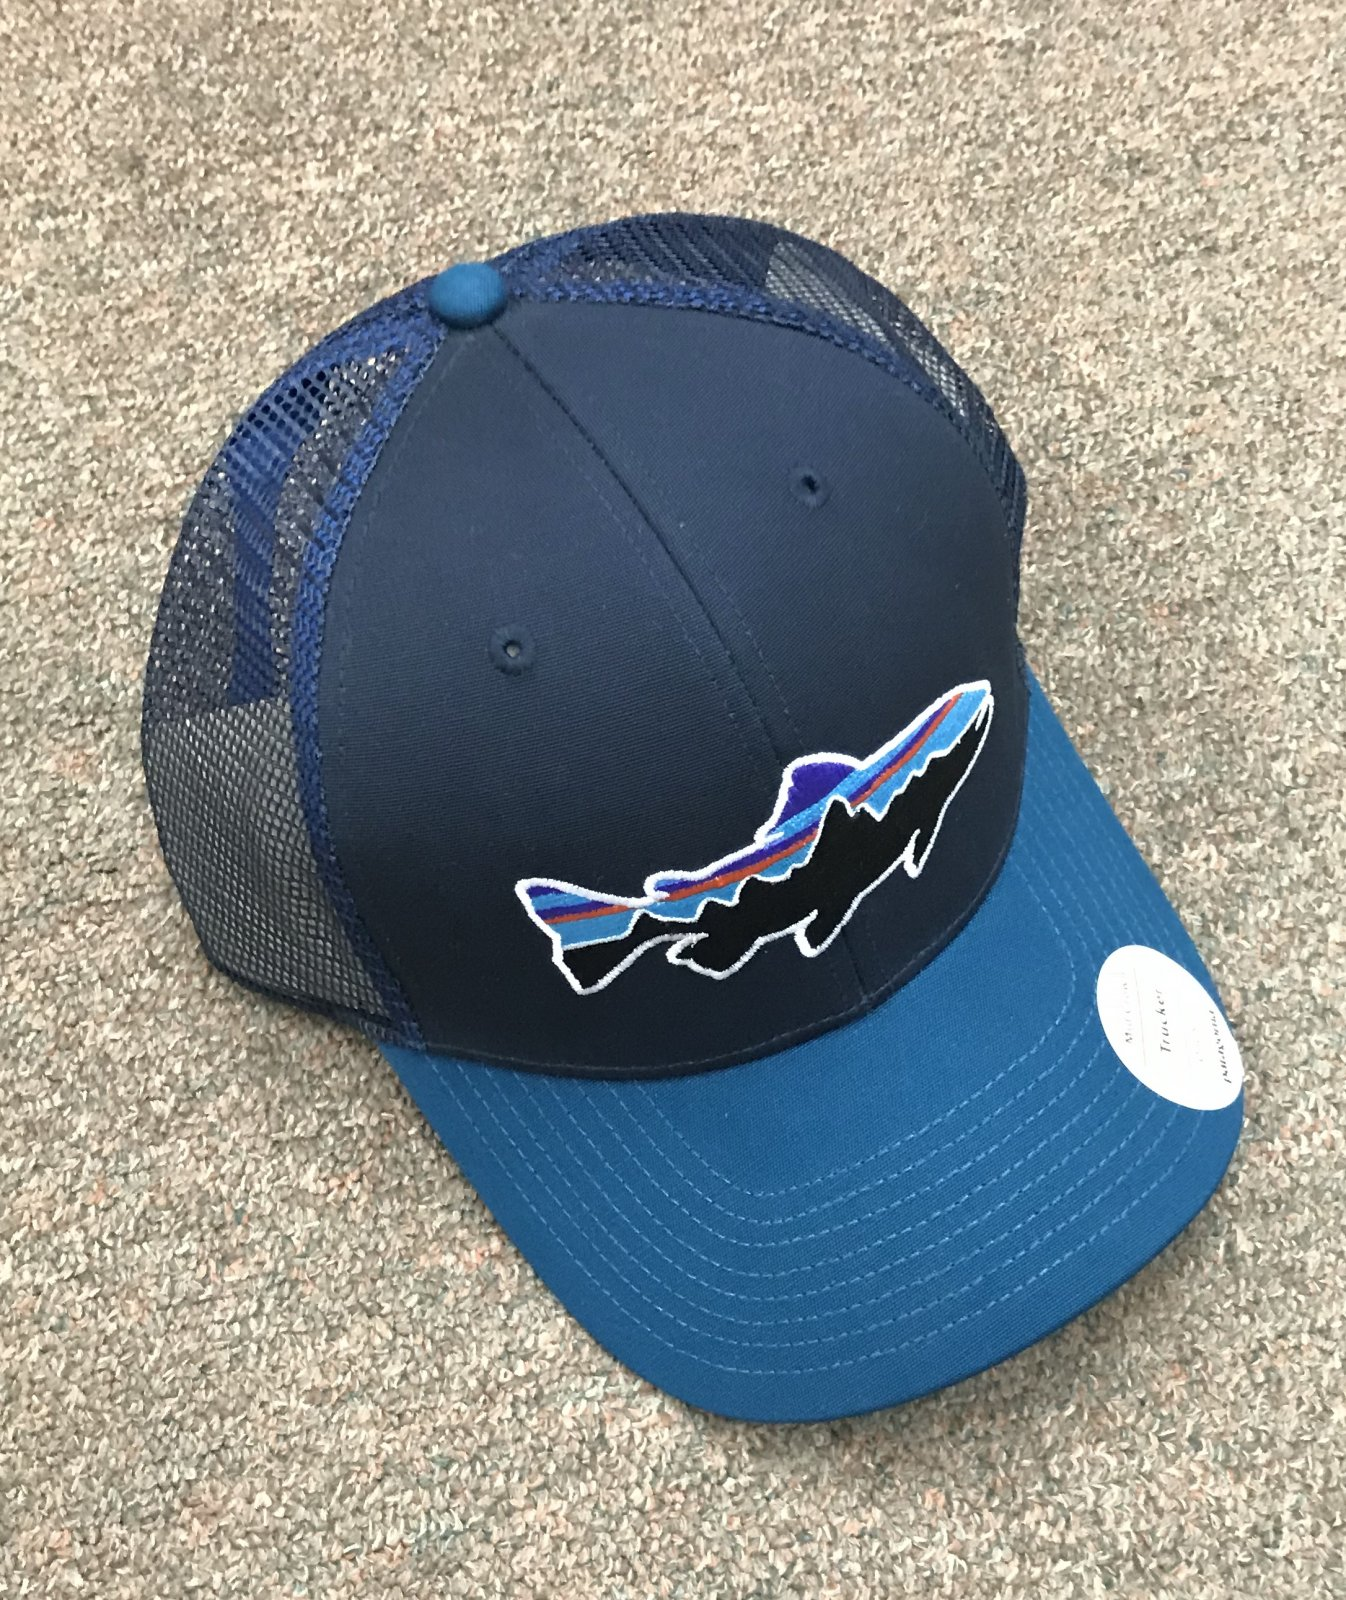 Patagonia Fitzroy Trout Trucker Hat